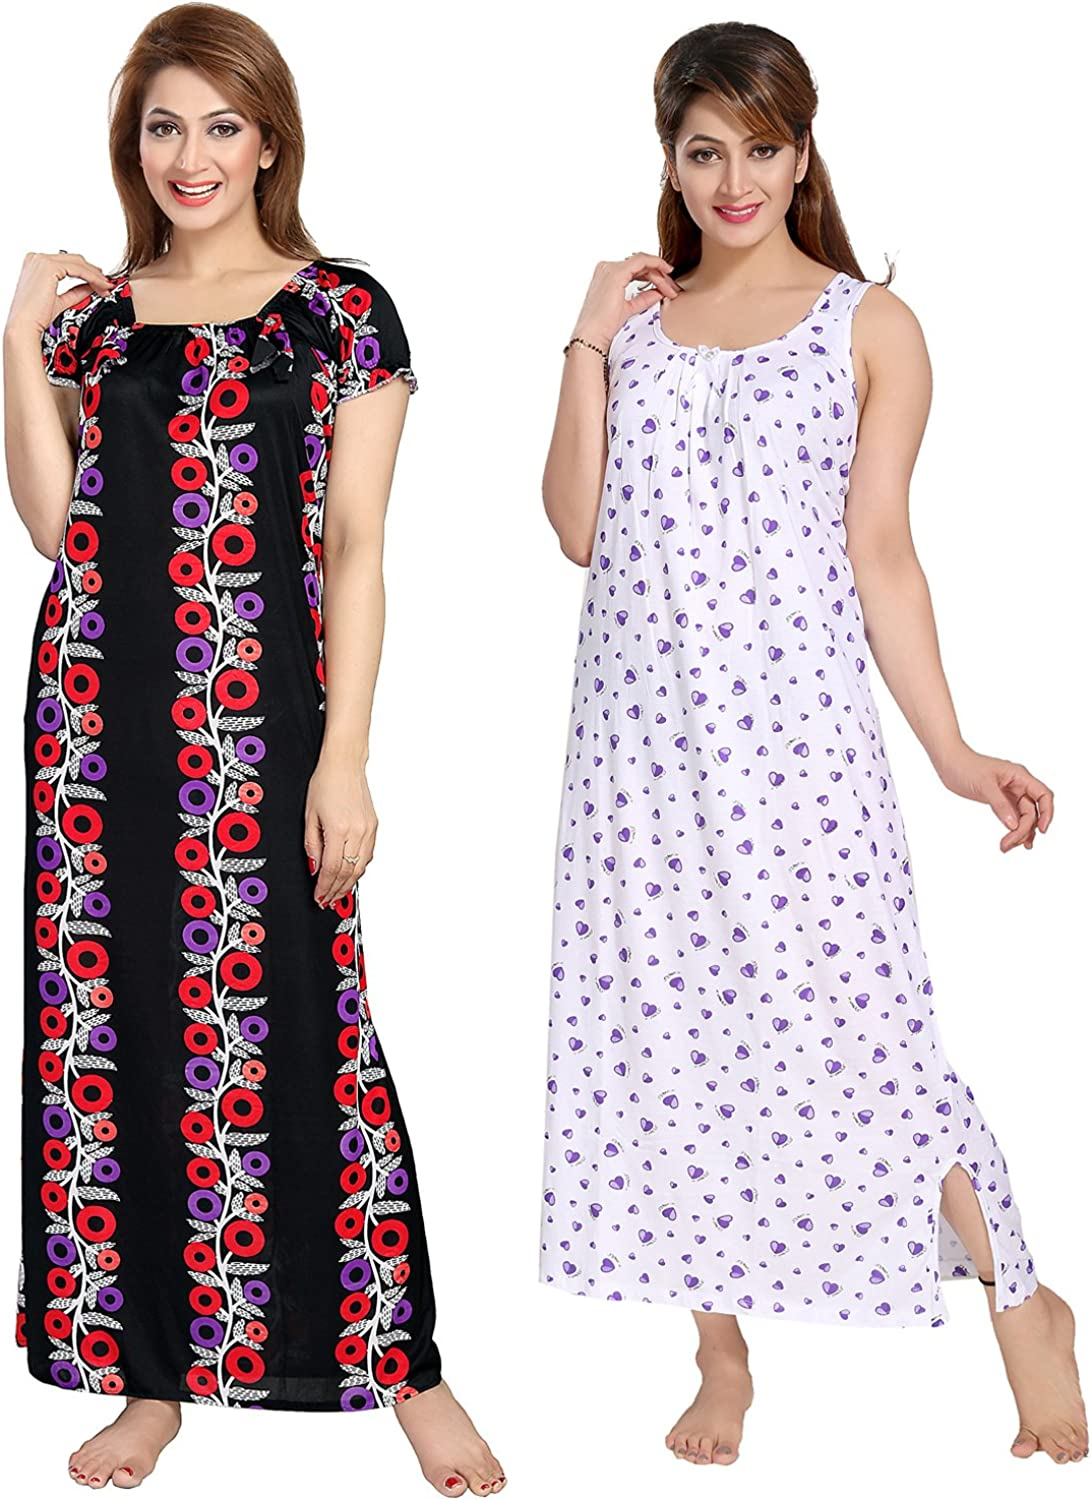 Be You Serena Satin BlackWhite Women Floral Printed Nightgowns Combo pack of 2